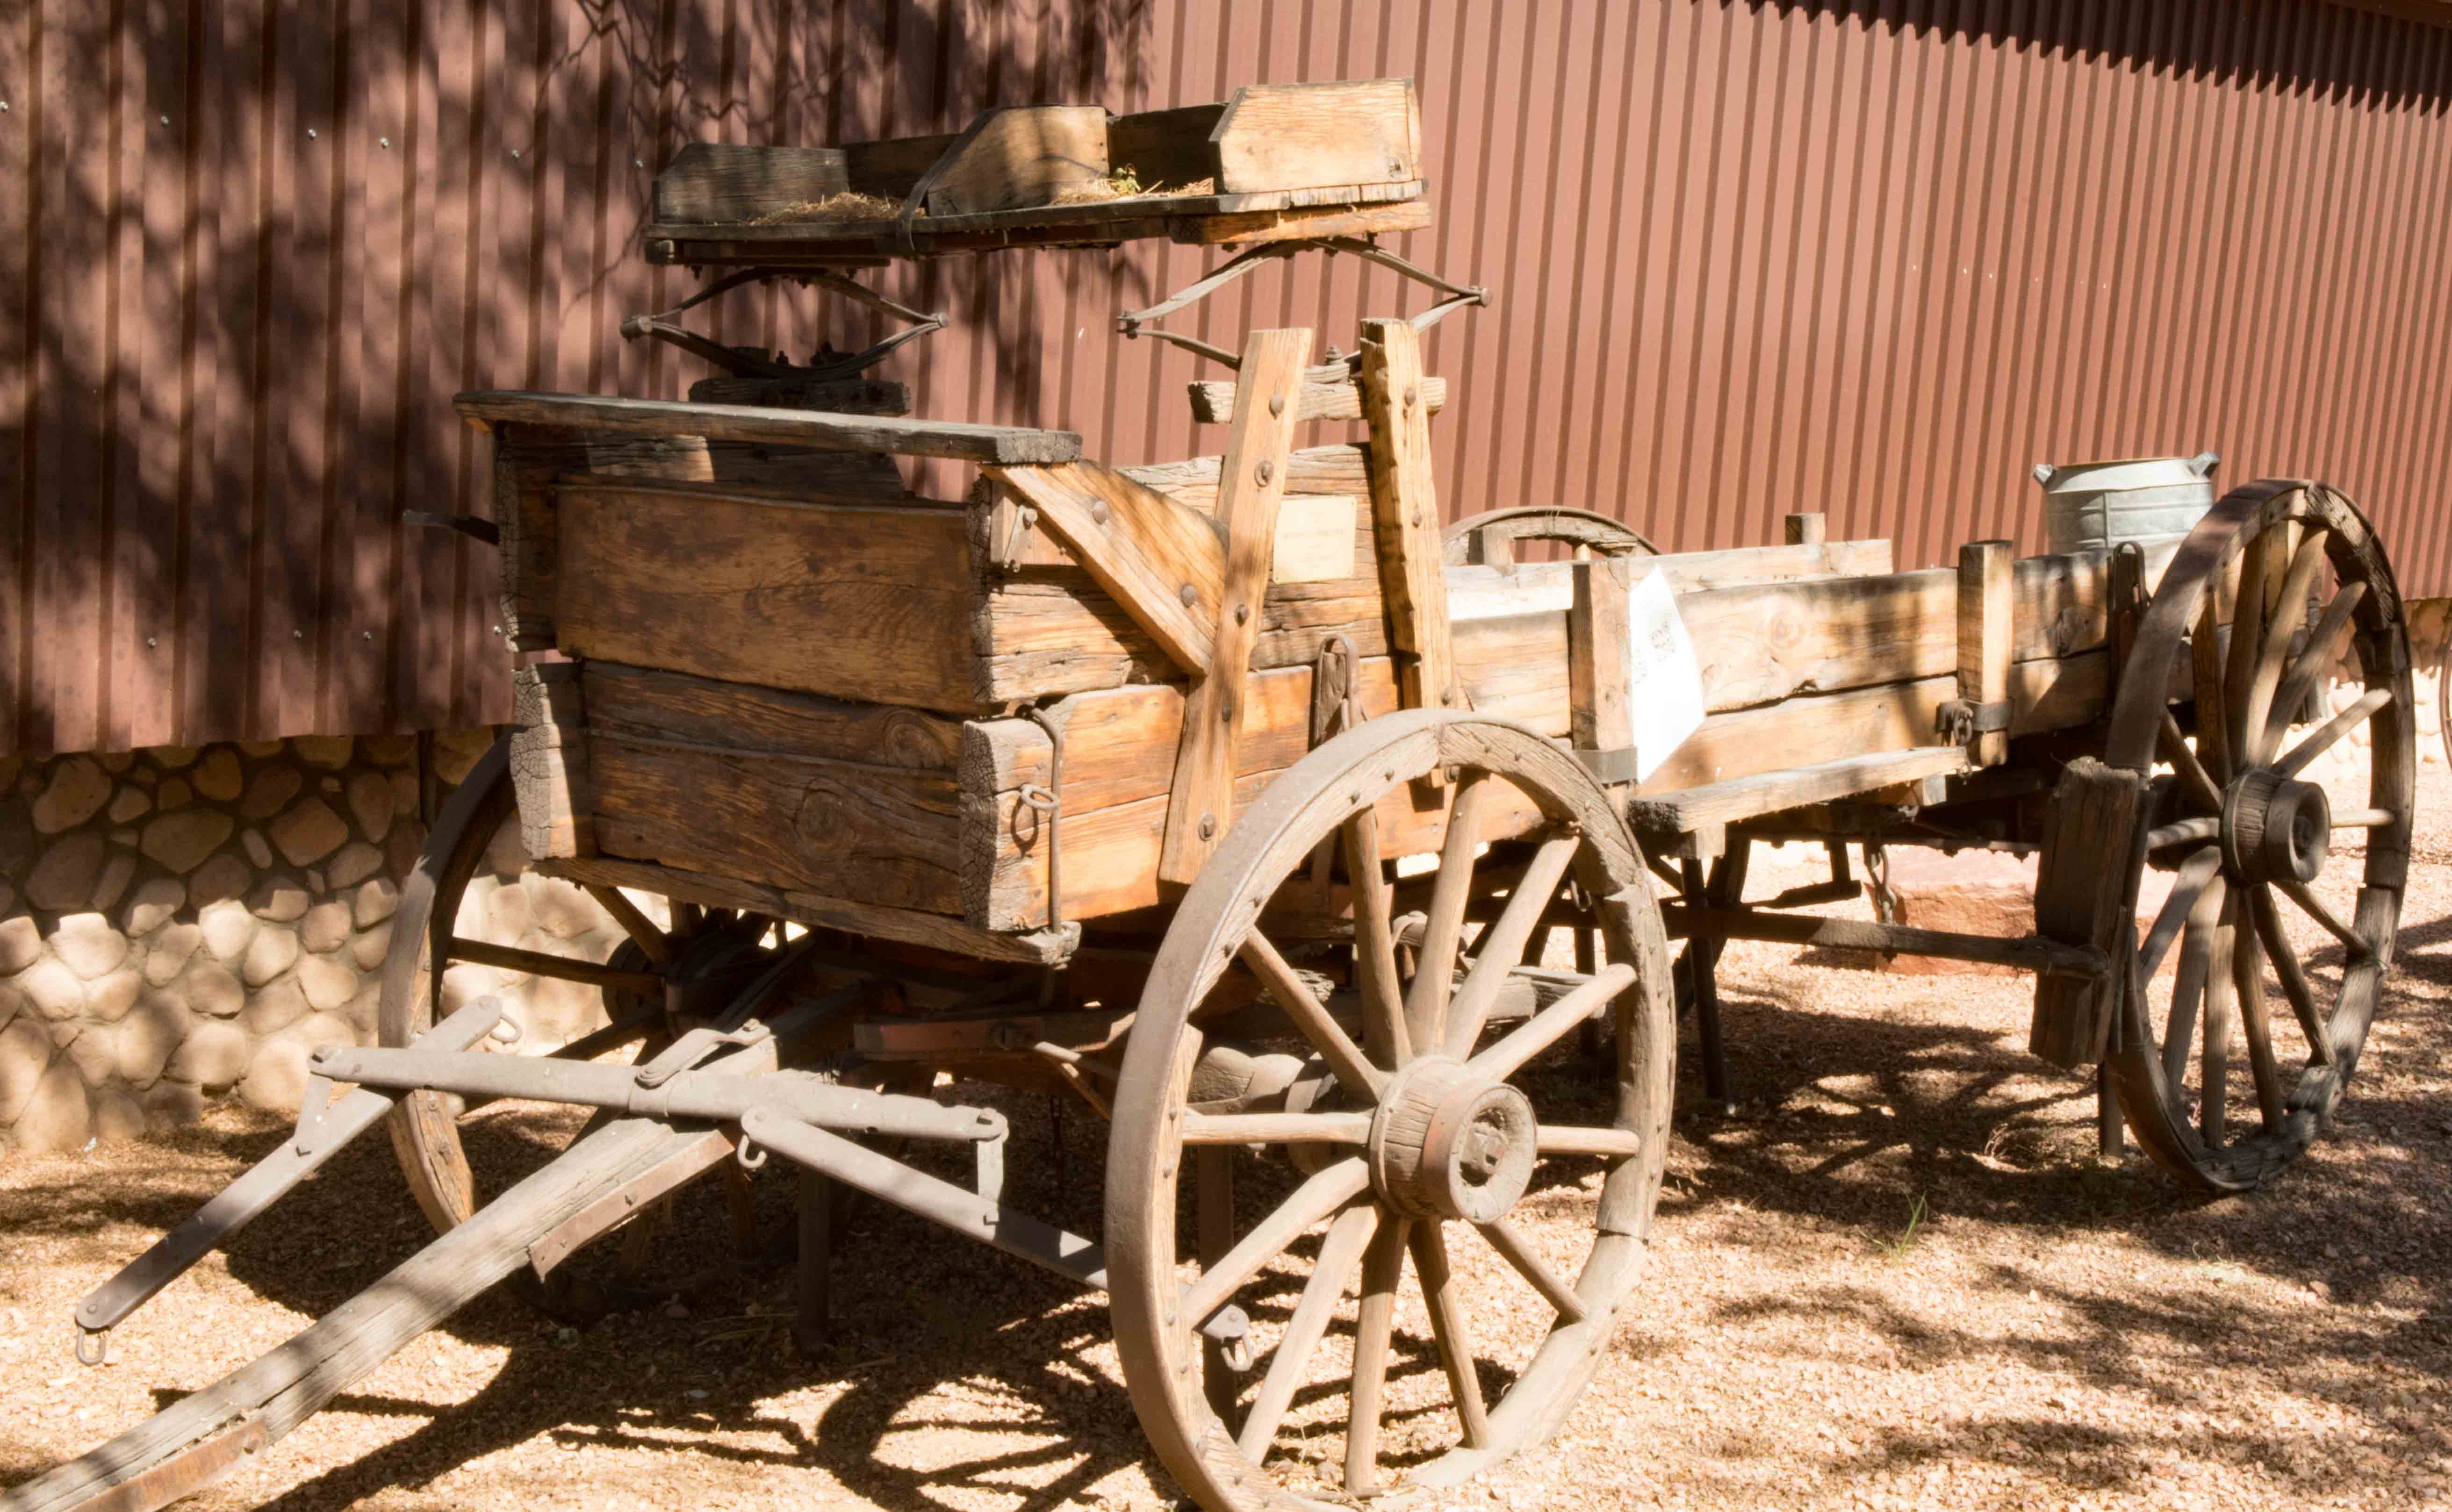 Old wagon on display at Virgin Valley Heritage Museum, Mesquite, Nevada, Oct. 18, 2016 | Photo by Jim Lillywhite, St. George News